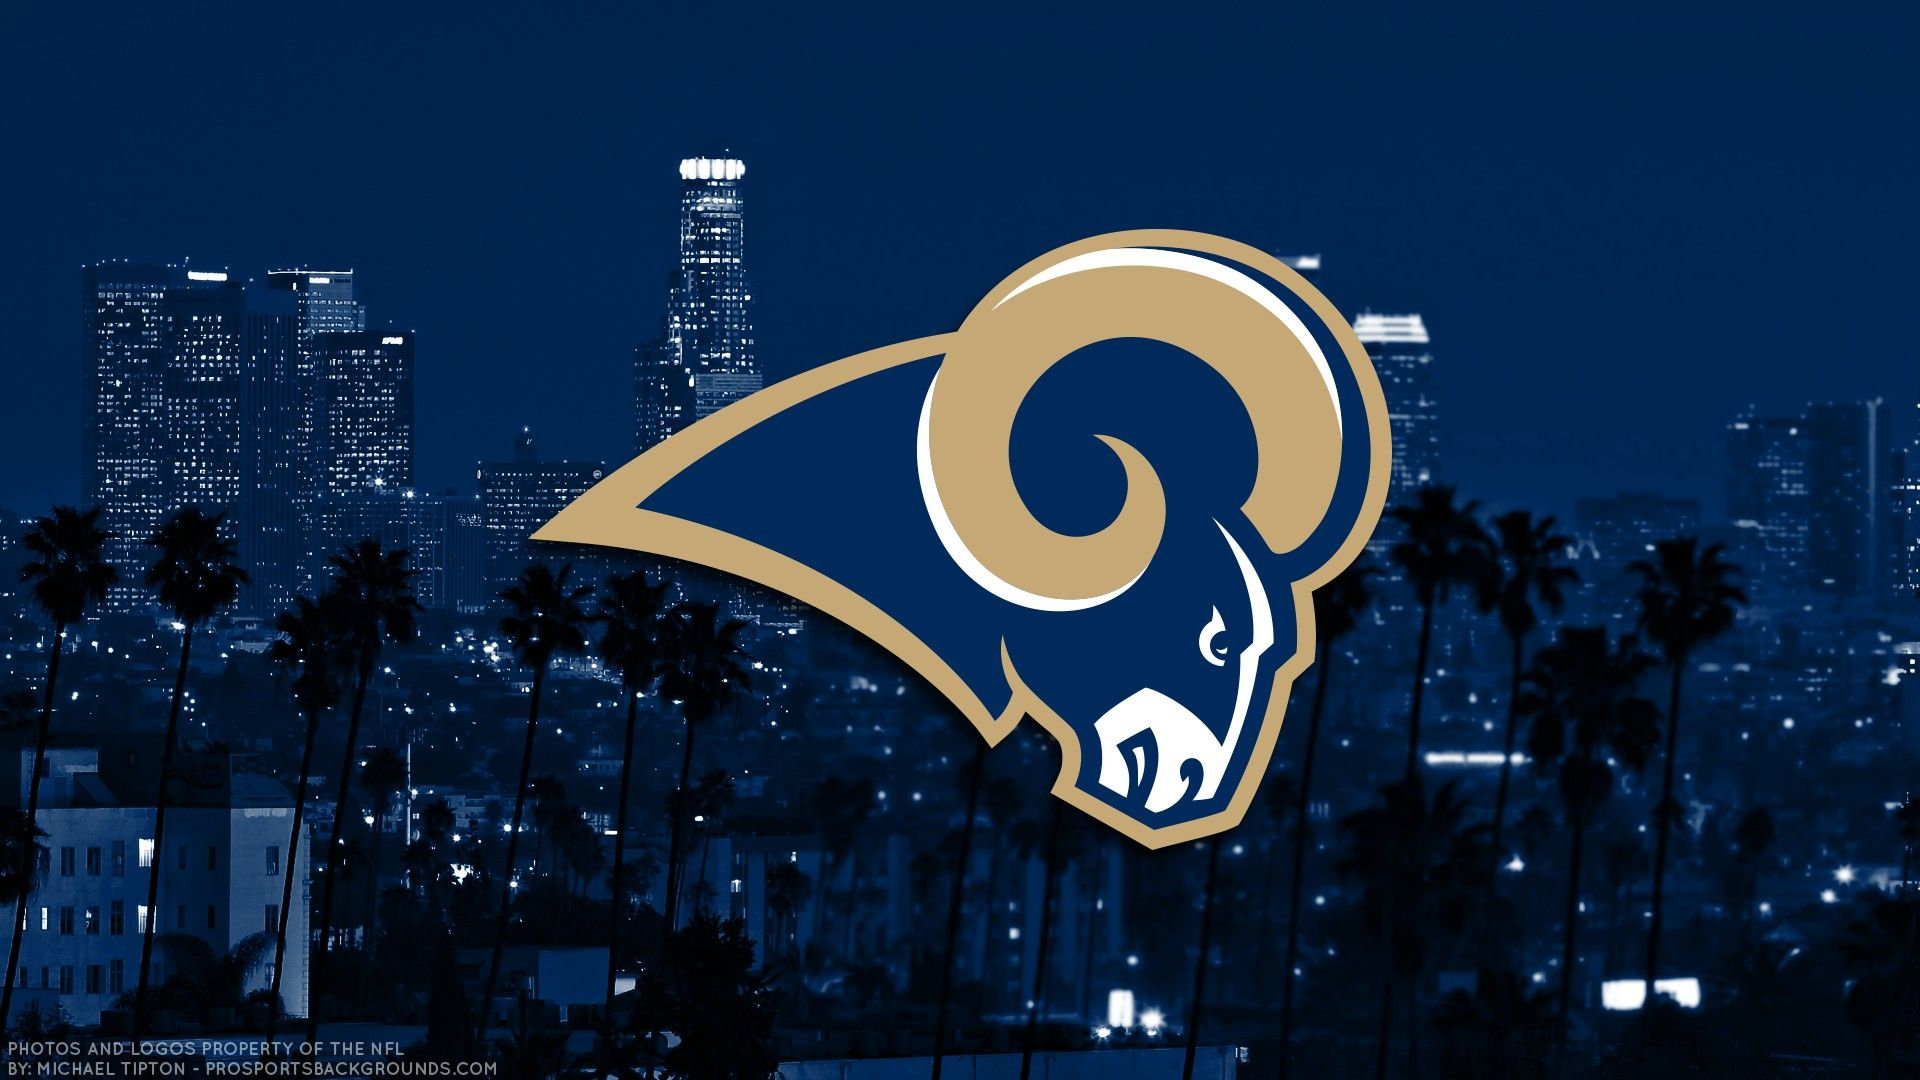 Nfl Wallpapers Football Wallpaper Nfl Football Wallpaper Los Angeles Rams